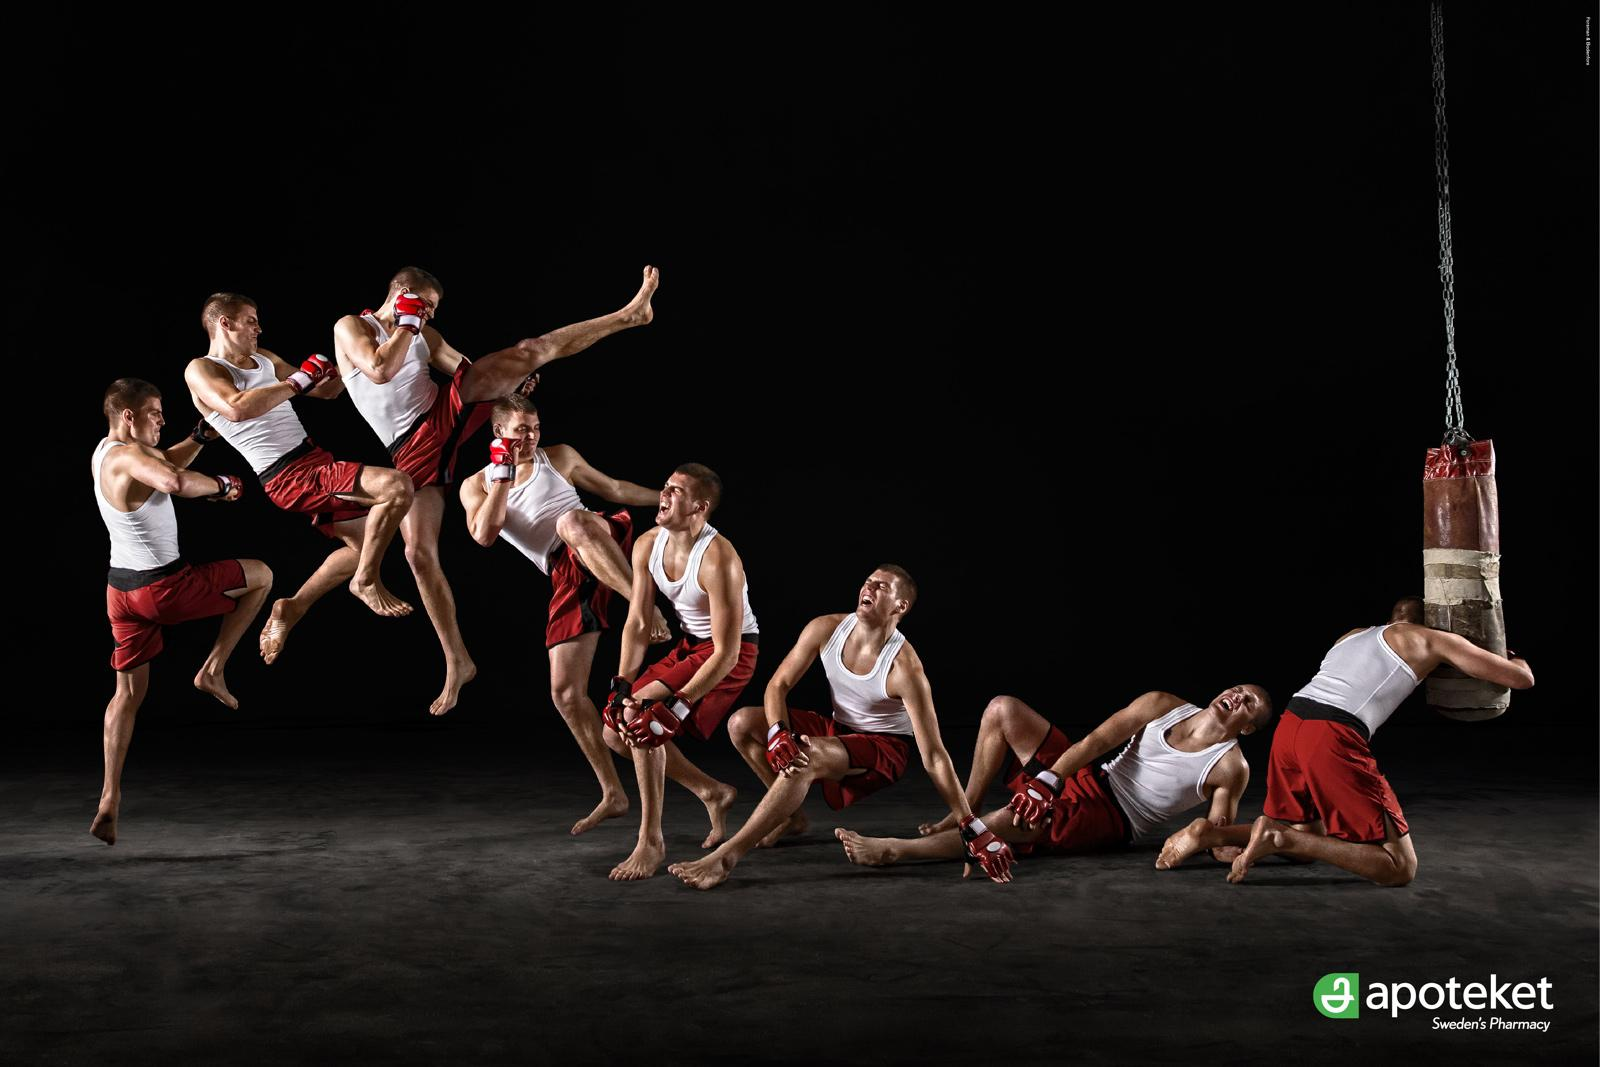 Apoteket Print Ad -  Injured Athletes, Kickboxing